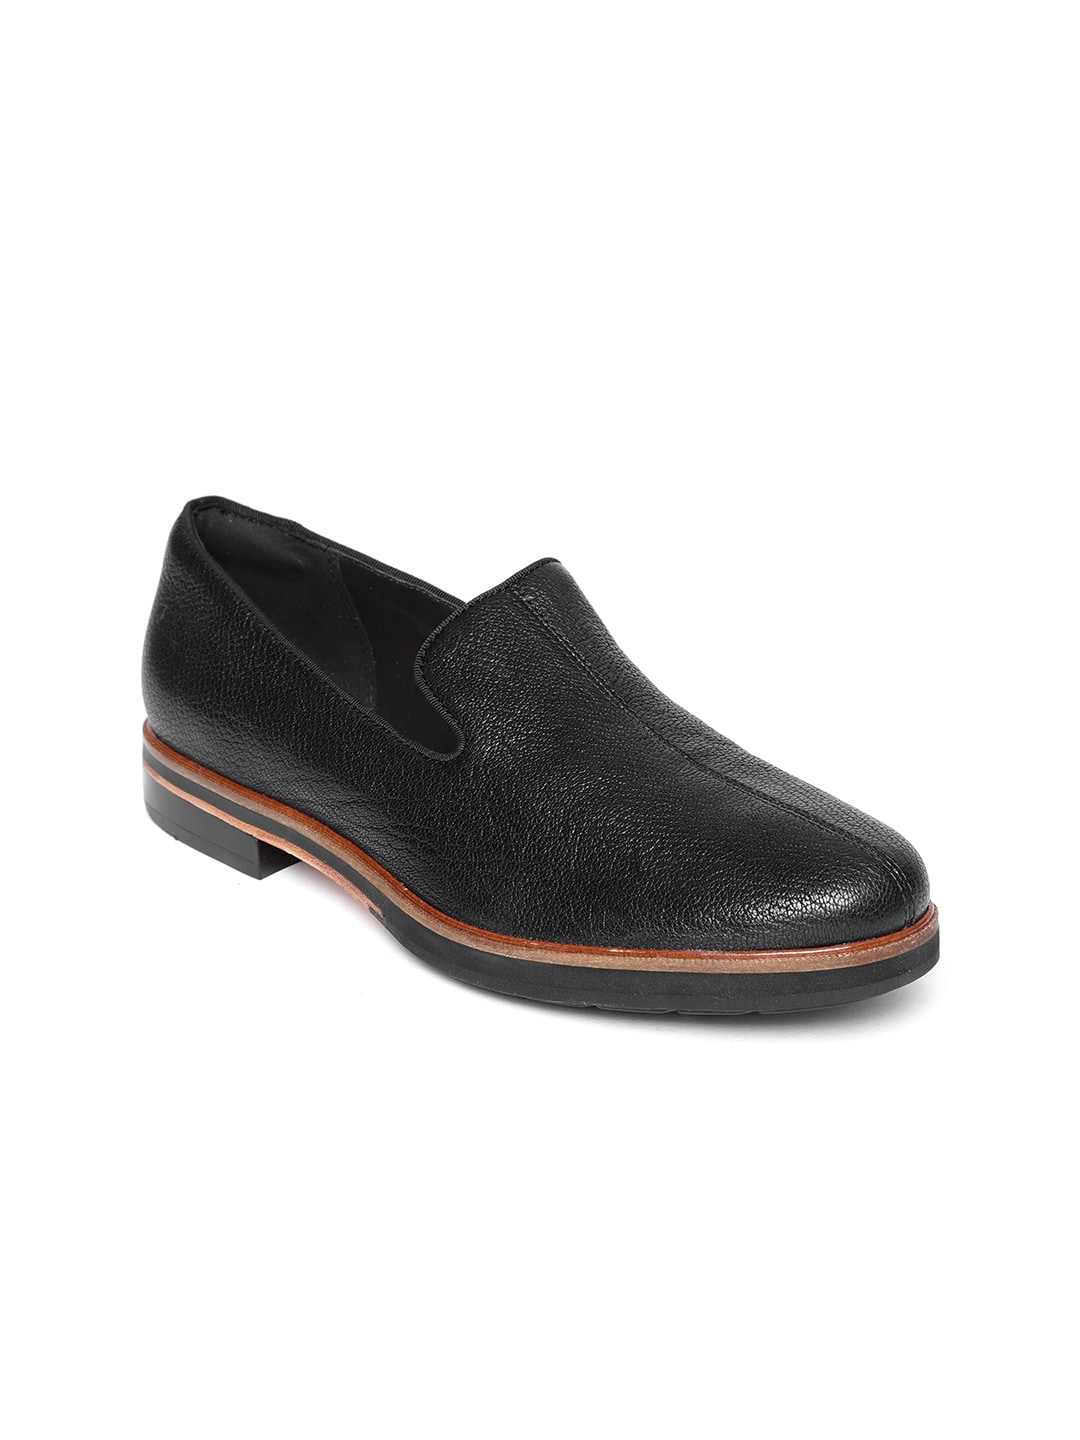 Women s Clarks Shoes - Buy Clarks Shoes for Women Online in India 4ebcb208b2